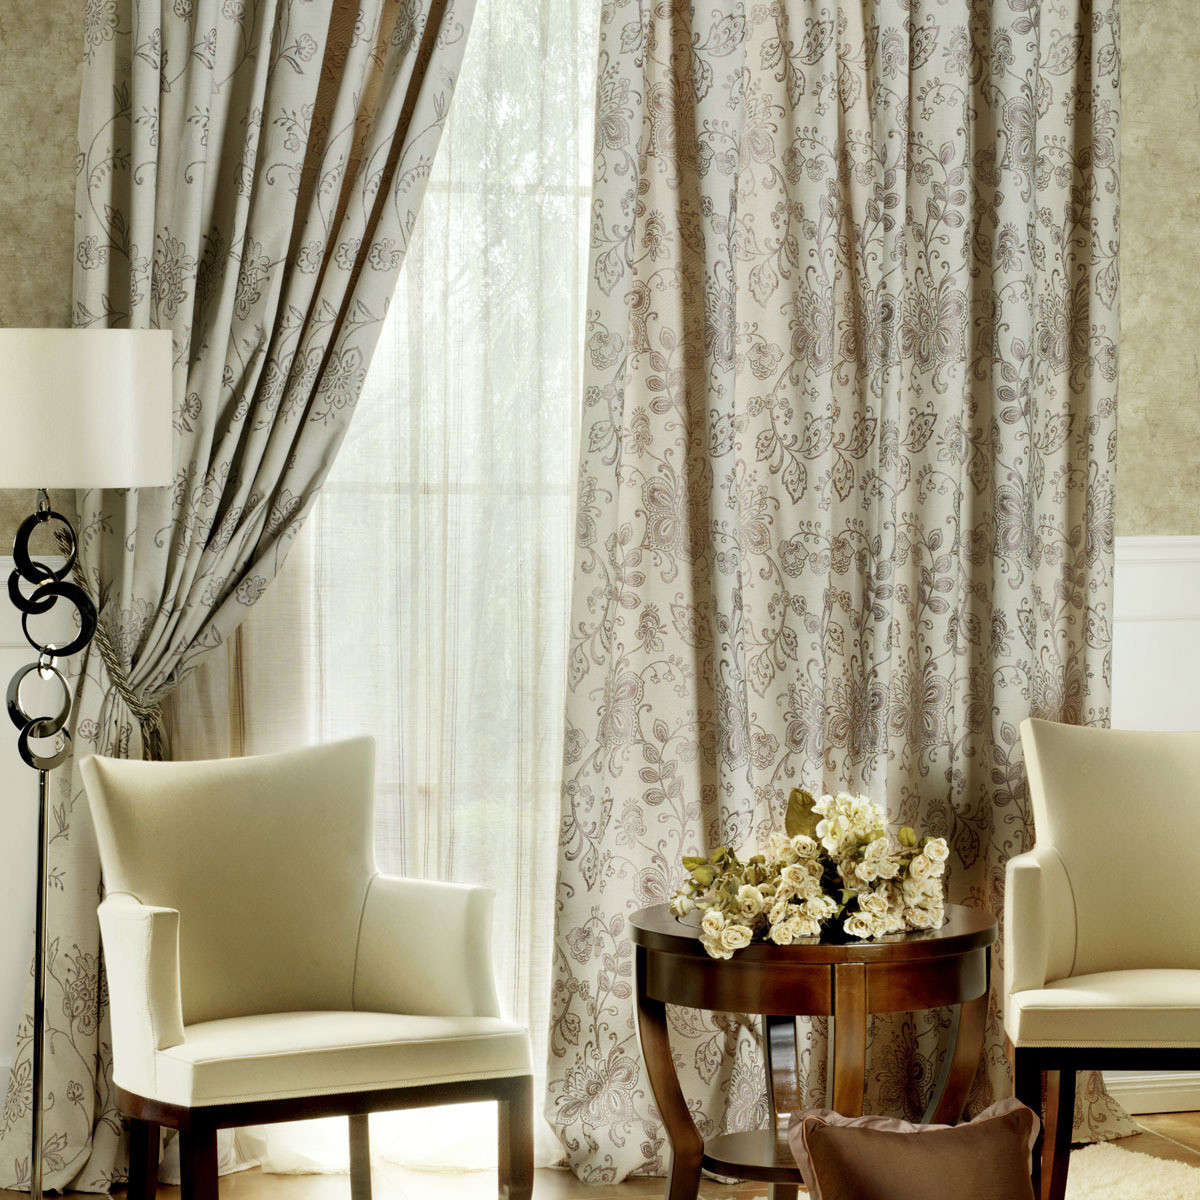 How to Buy Curtains/Drapes for Home | My Decorative on Draping Curtains Ideas  id=49922